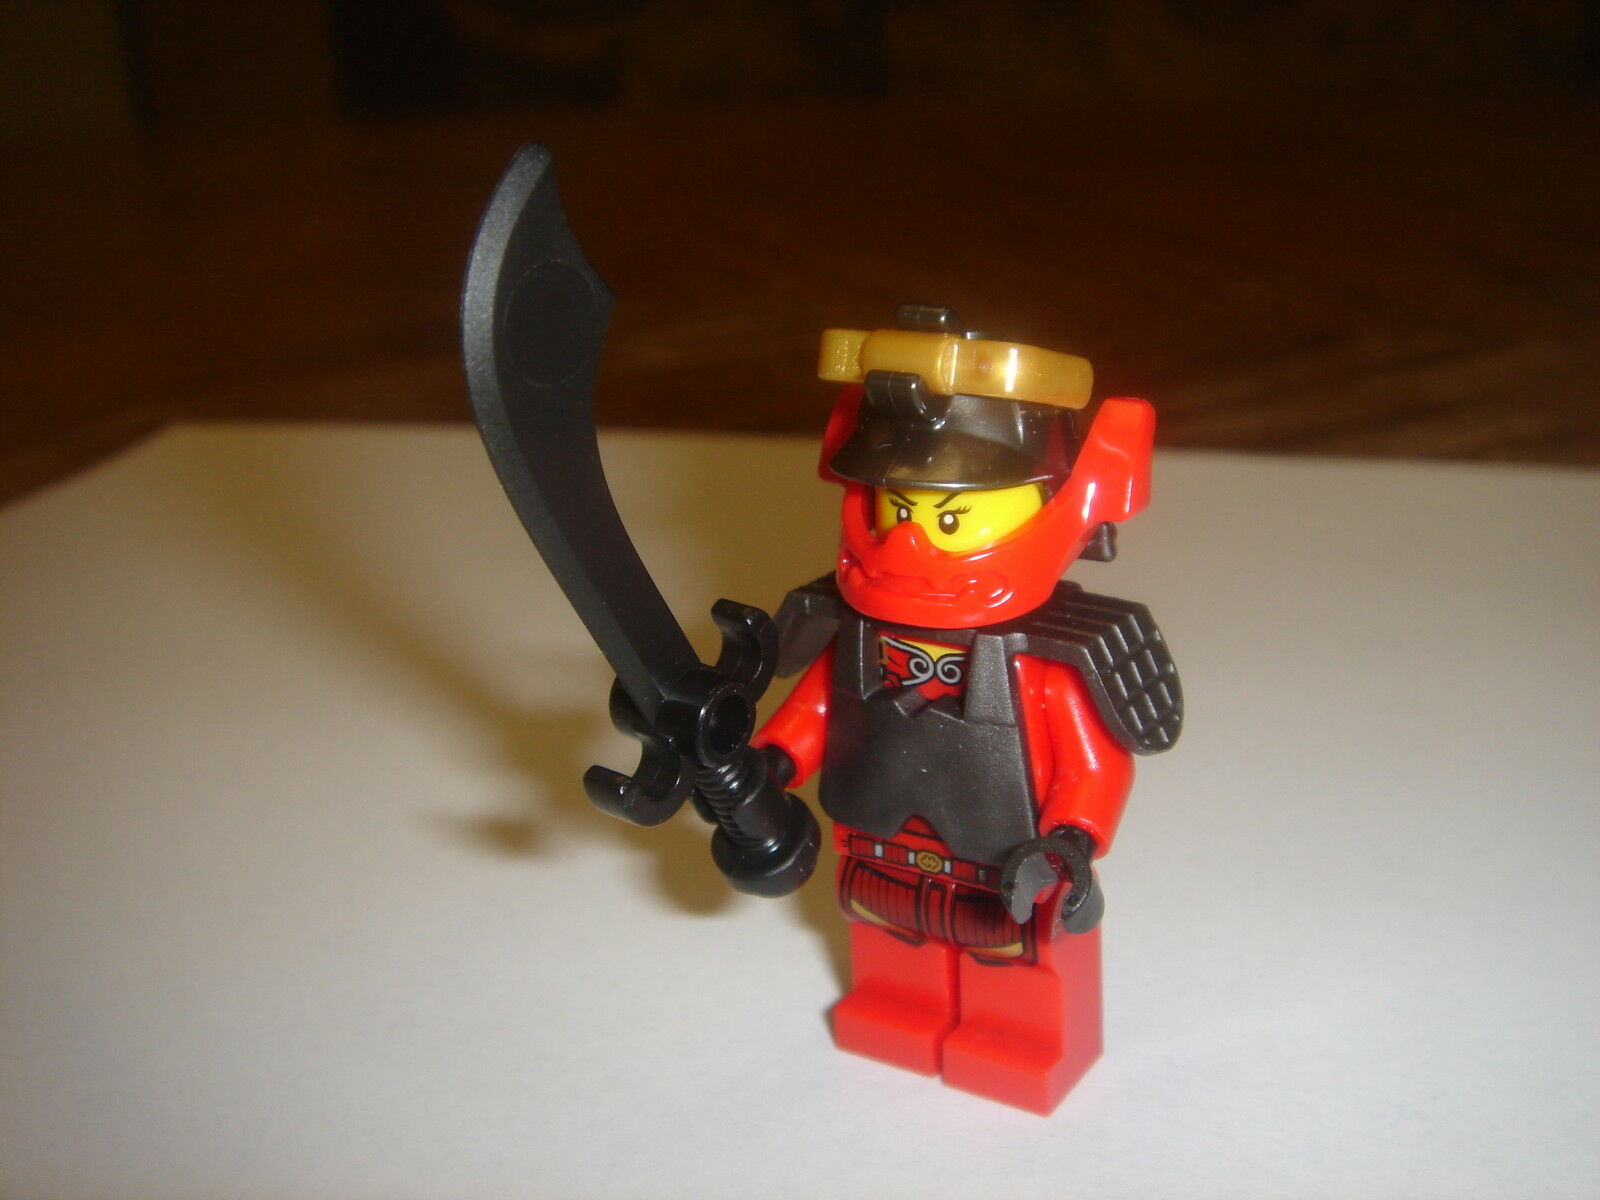 Lego Ninjago Samurai X Minifigure With Weapon New 1143 Picclick 70596 Cave Chaos 1 Of 3only 3 Available